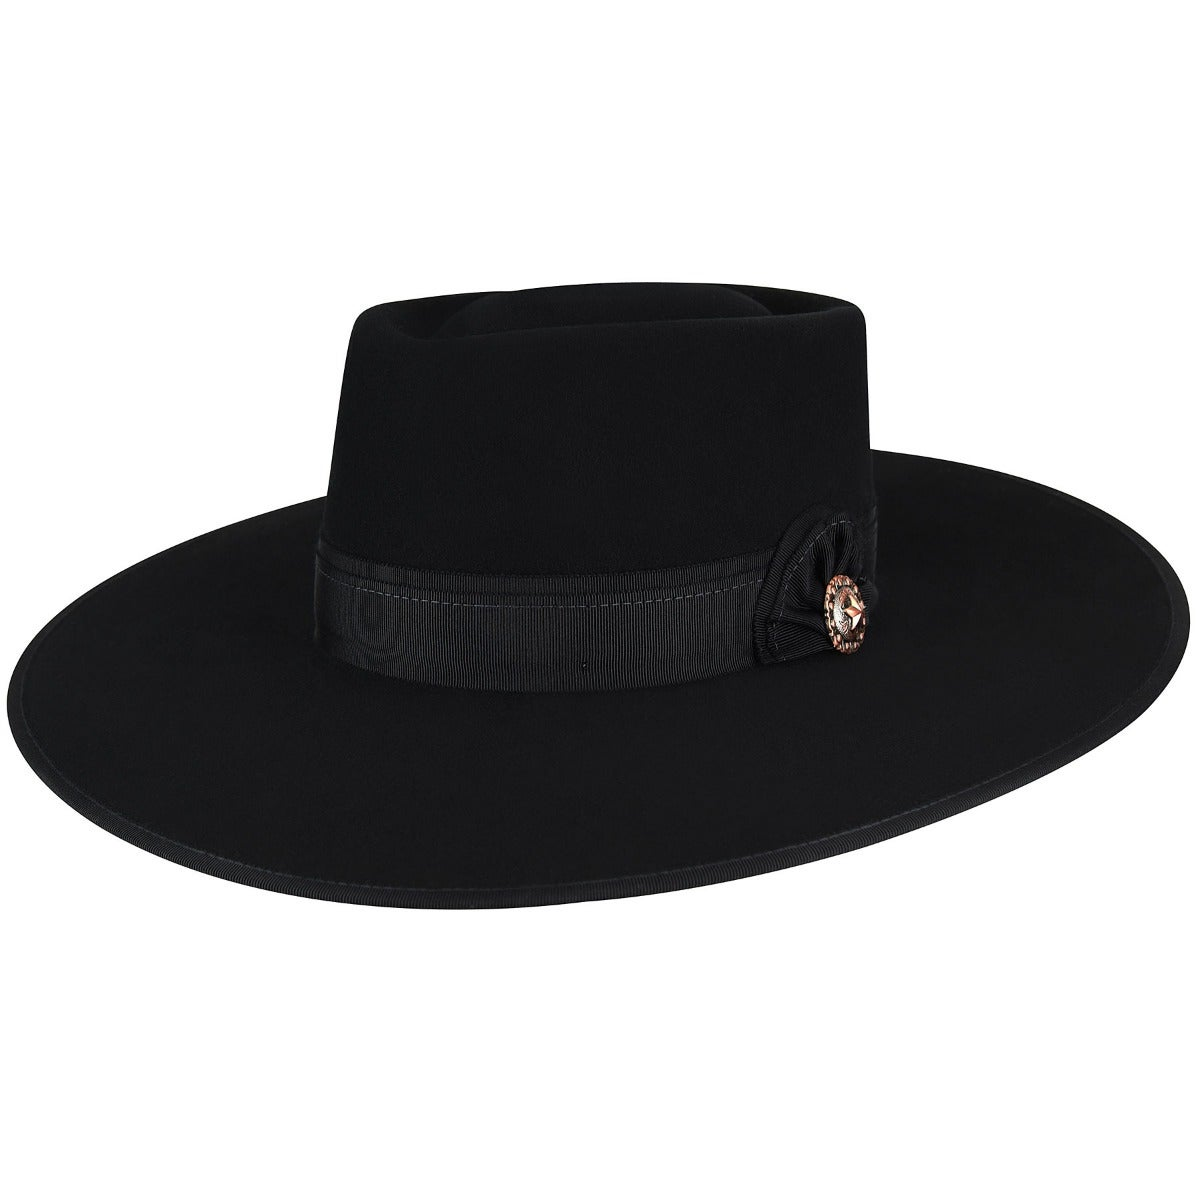 Steampunk Hats | Top Hats | Bowler Cowpuncher Western Hat $120.00 AT vintagedancer.com